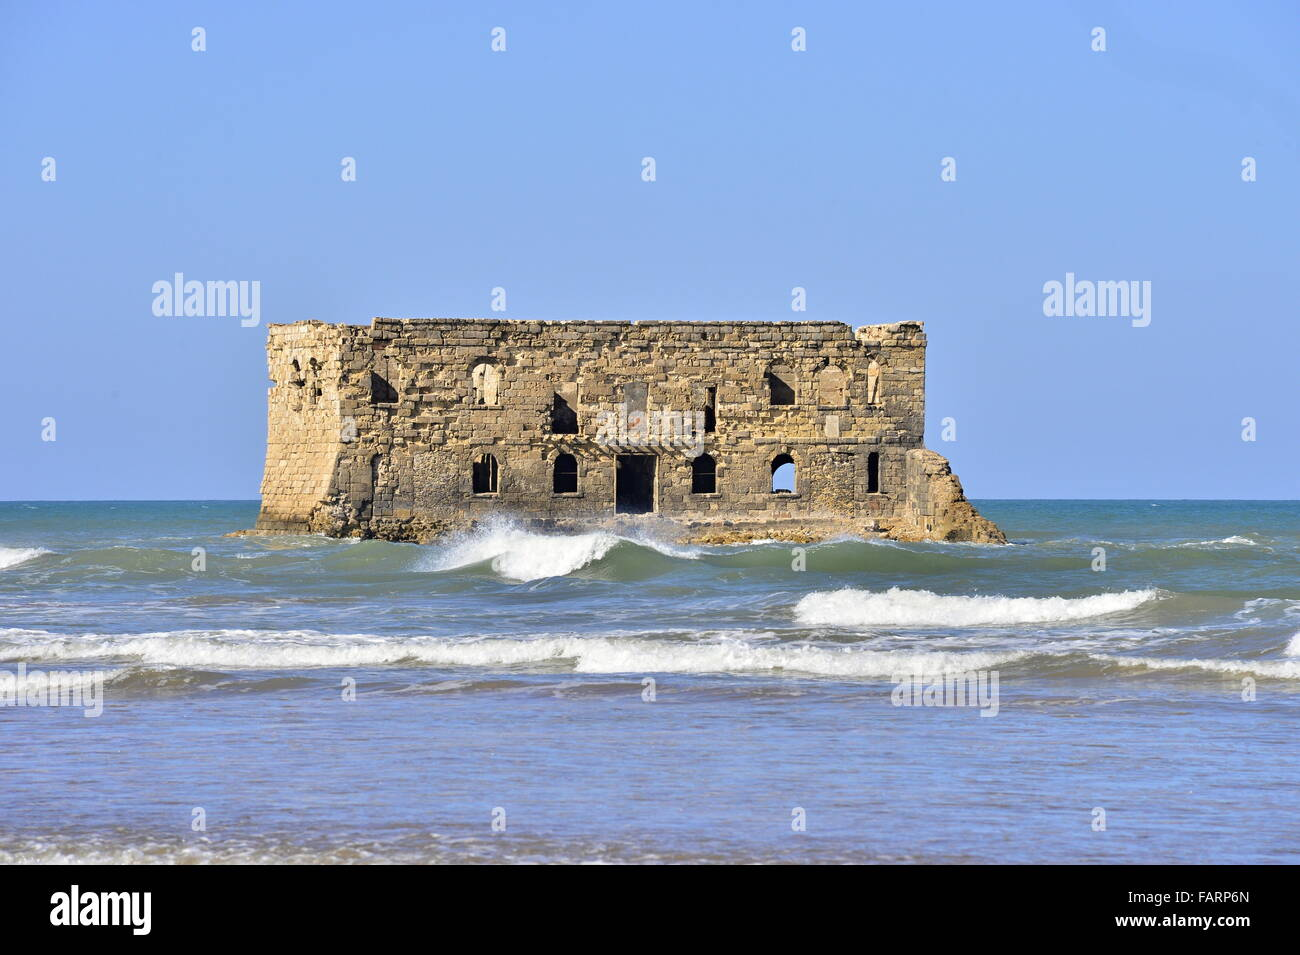 old prison in Tarfaya in Morocco with sea - Stock Image